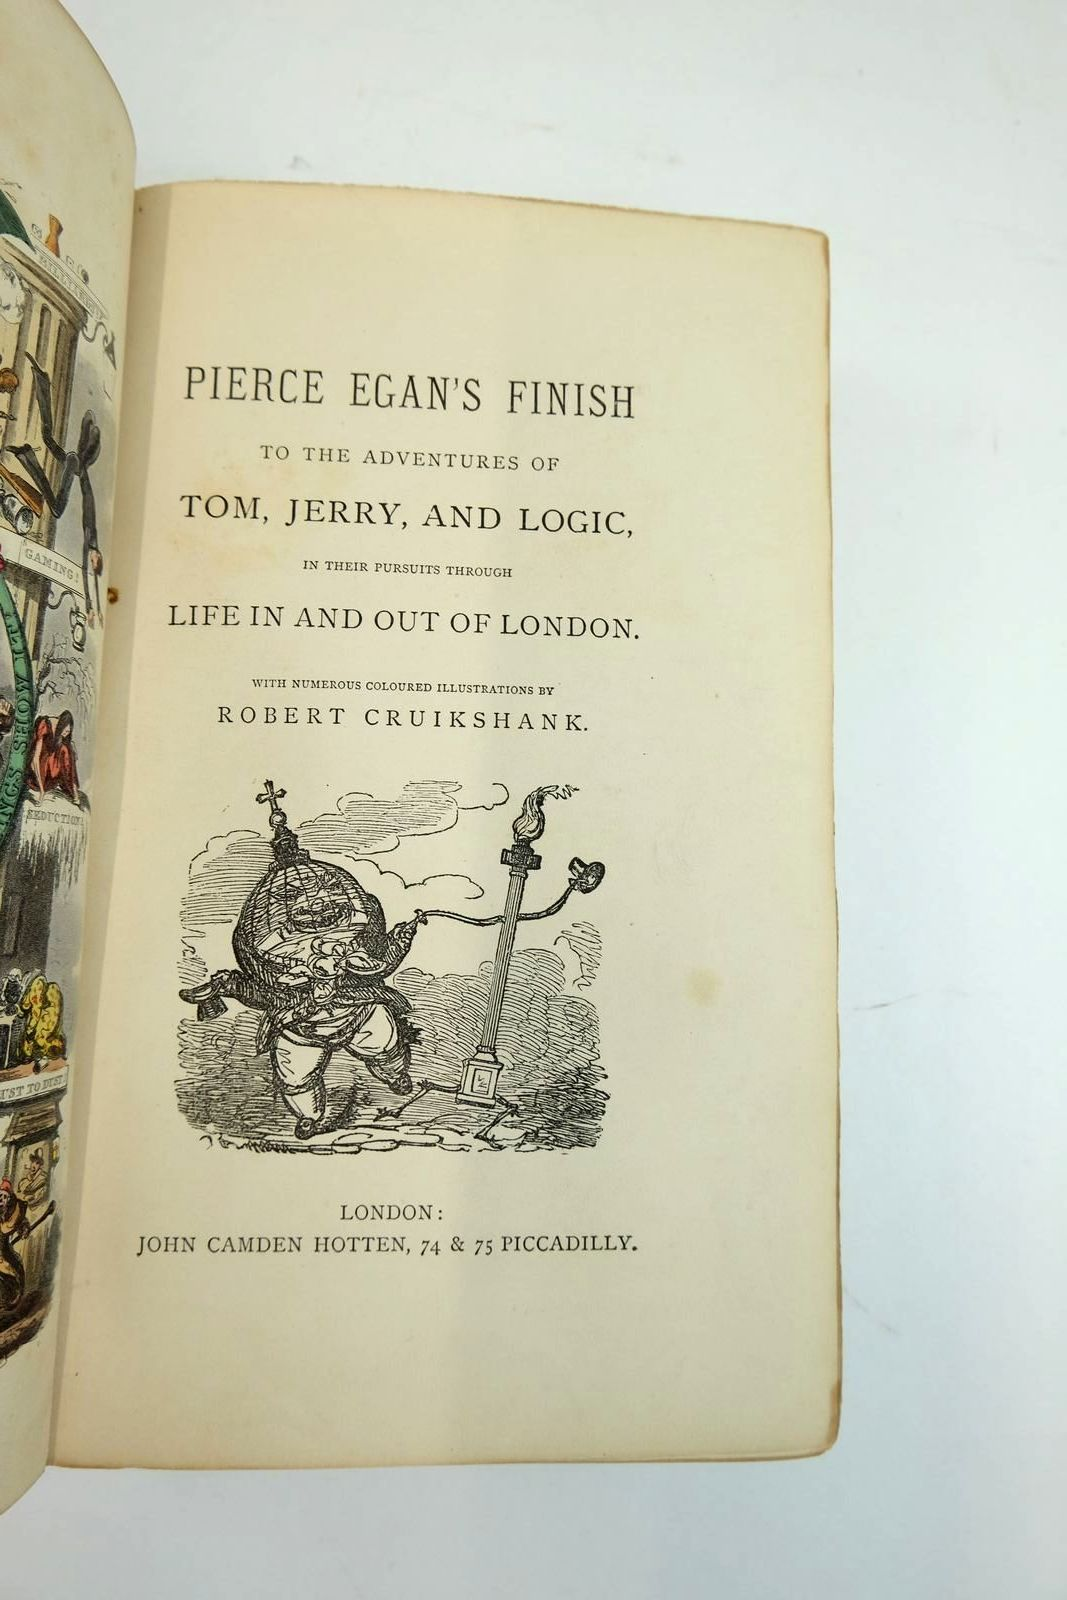 Photo of PIERCE EGAN'S FINISH TO THE ADVENTURES OF TOM, JERRY, AND LOGIC, IN THEIR PURSUITS THROUGH LIFE IN AND OUT OF LONDON written by Egan, Pierce illustrated by Cruikshank, Robert published by John Camden Hotten (STOCK CODE: 2134072)  for sale by Stella & Rose's Books